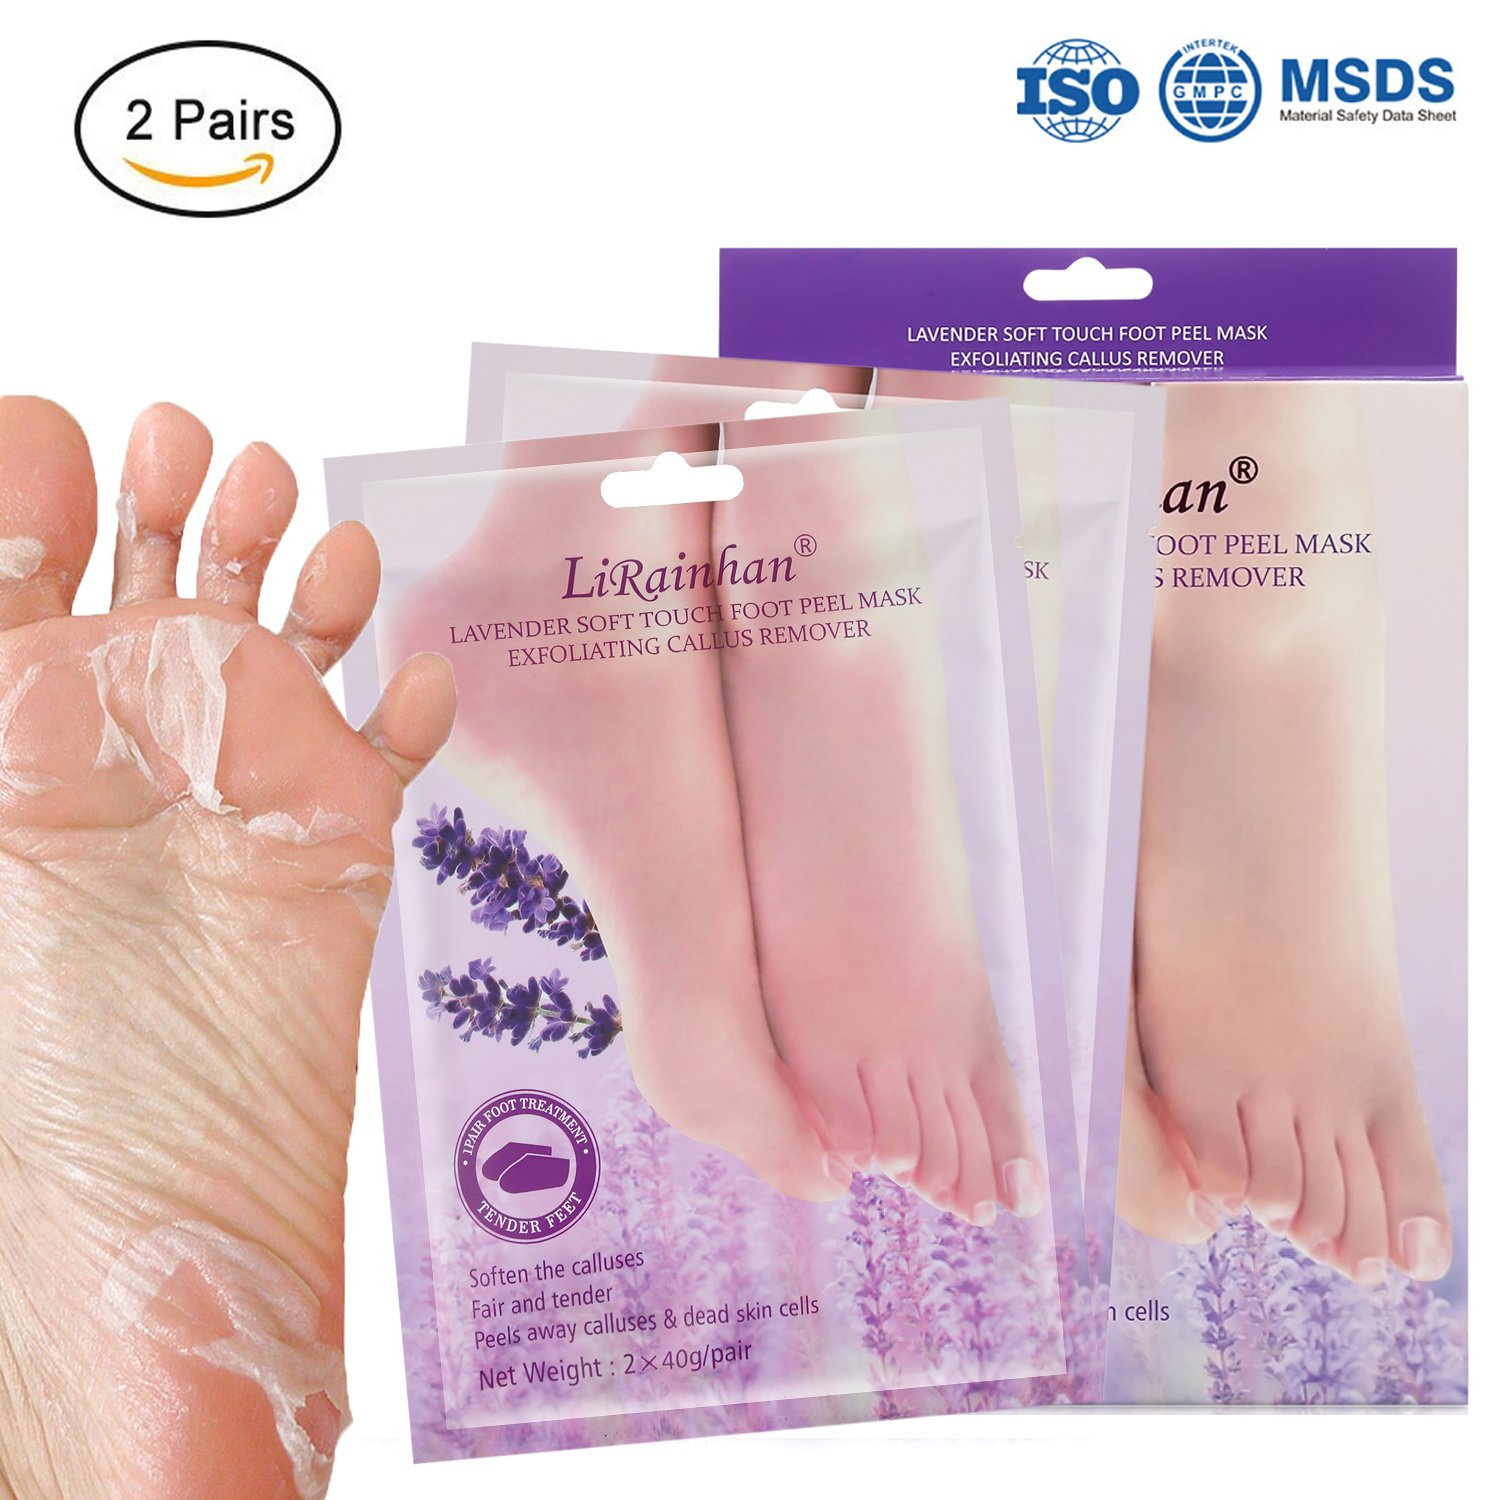 2 Pairs Exfoliant Foot Peel Mask for Soft Feet in 3-7 days, Exfoliating Booties for Peeling Off Calluses & Dead Skin, Baby Your Feet, for Men & Women - Lavender